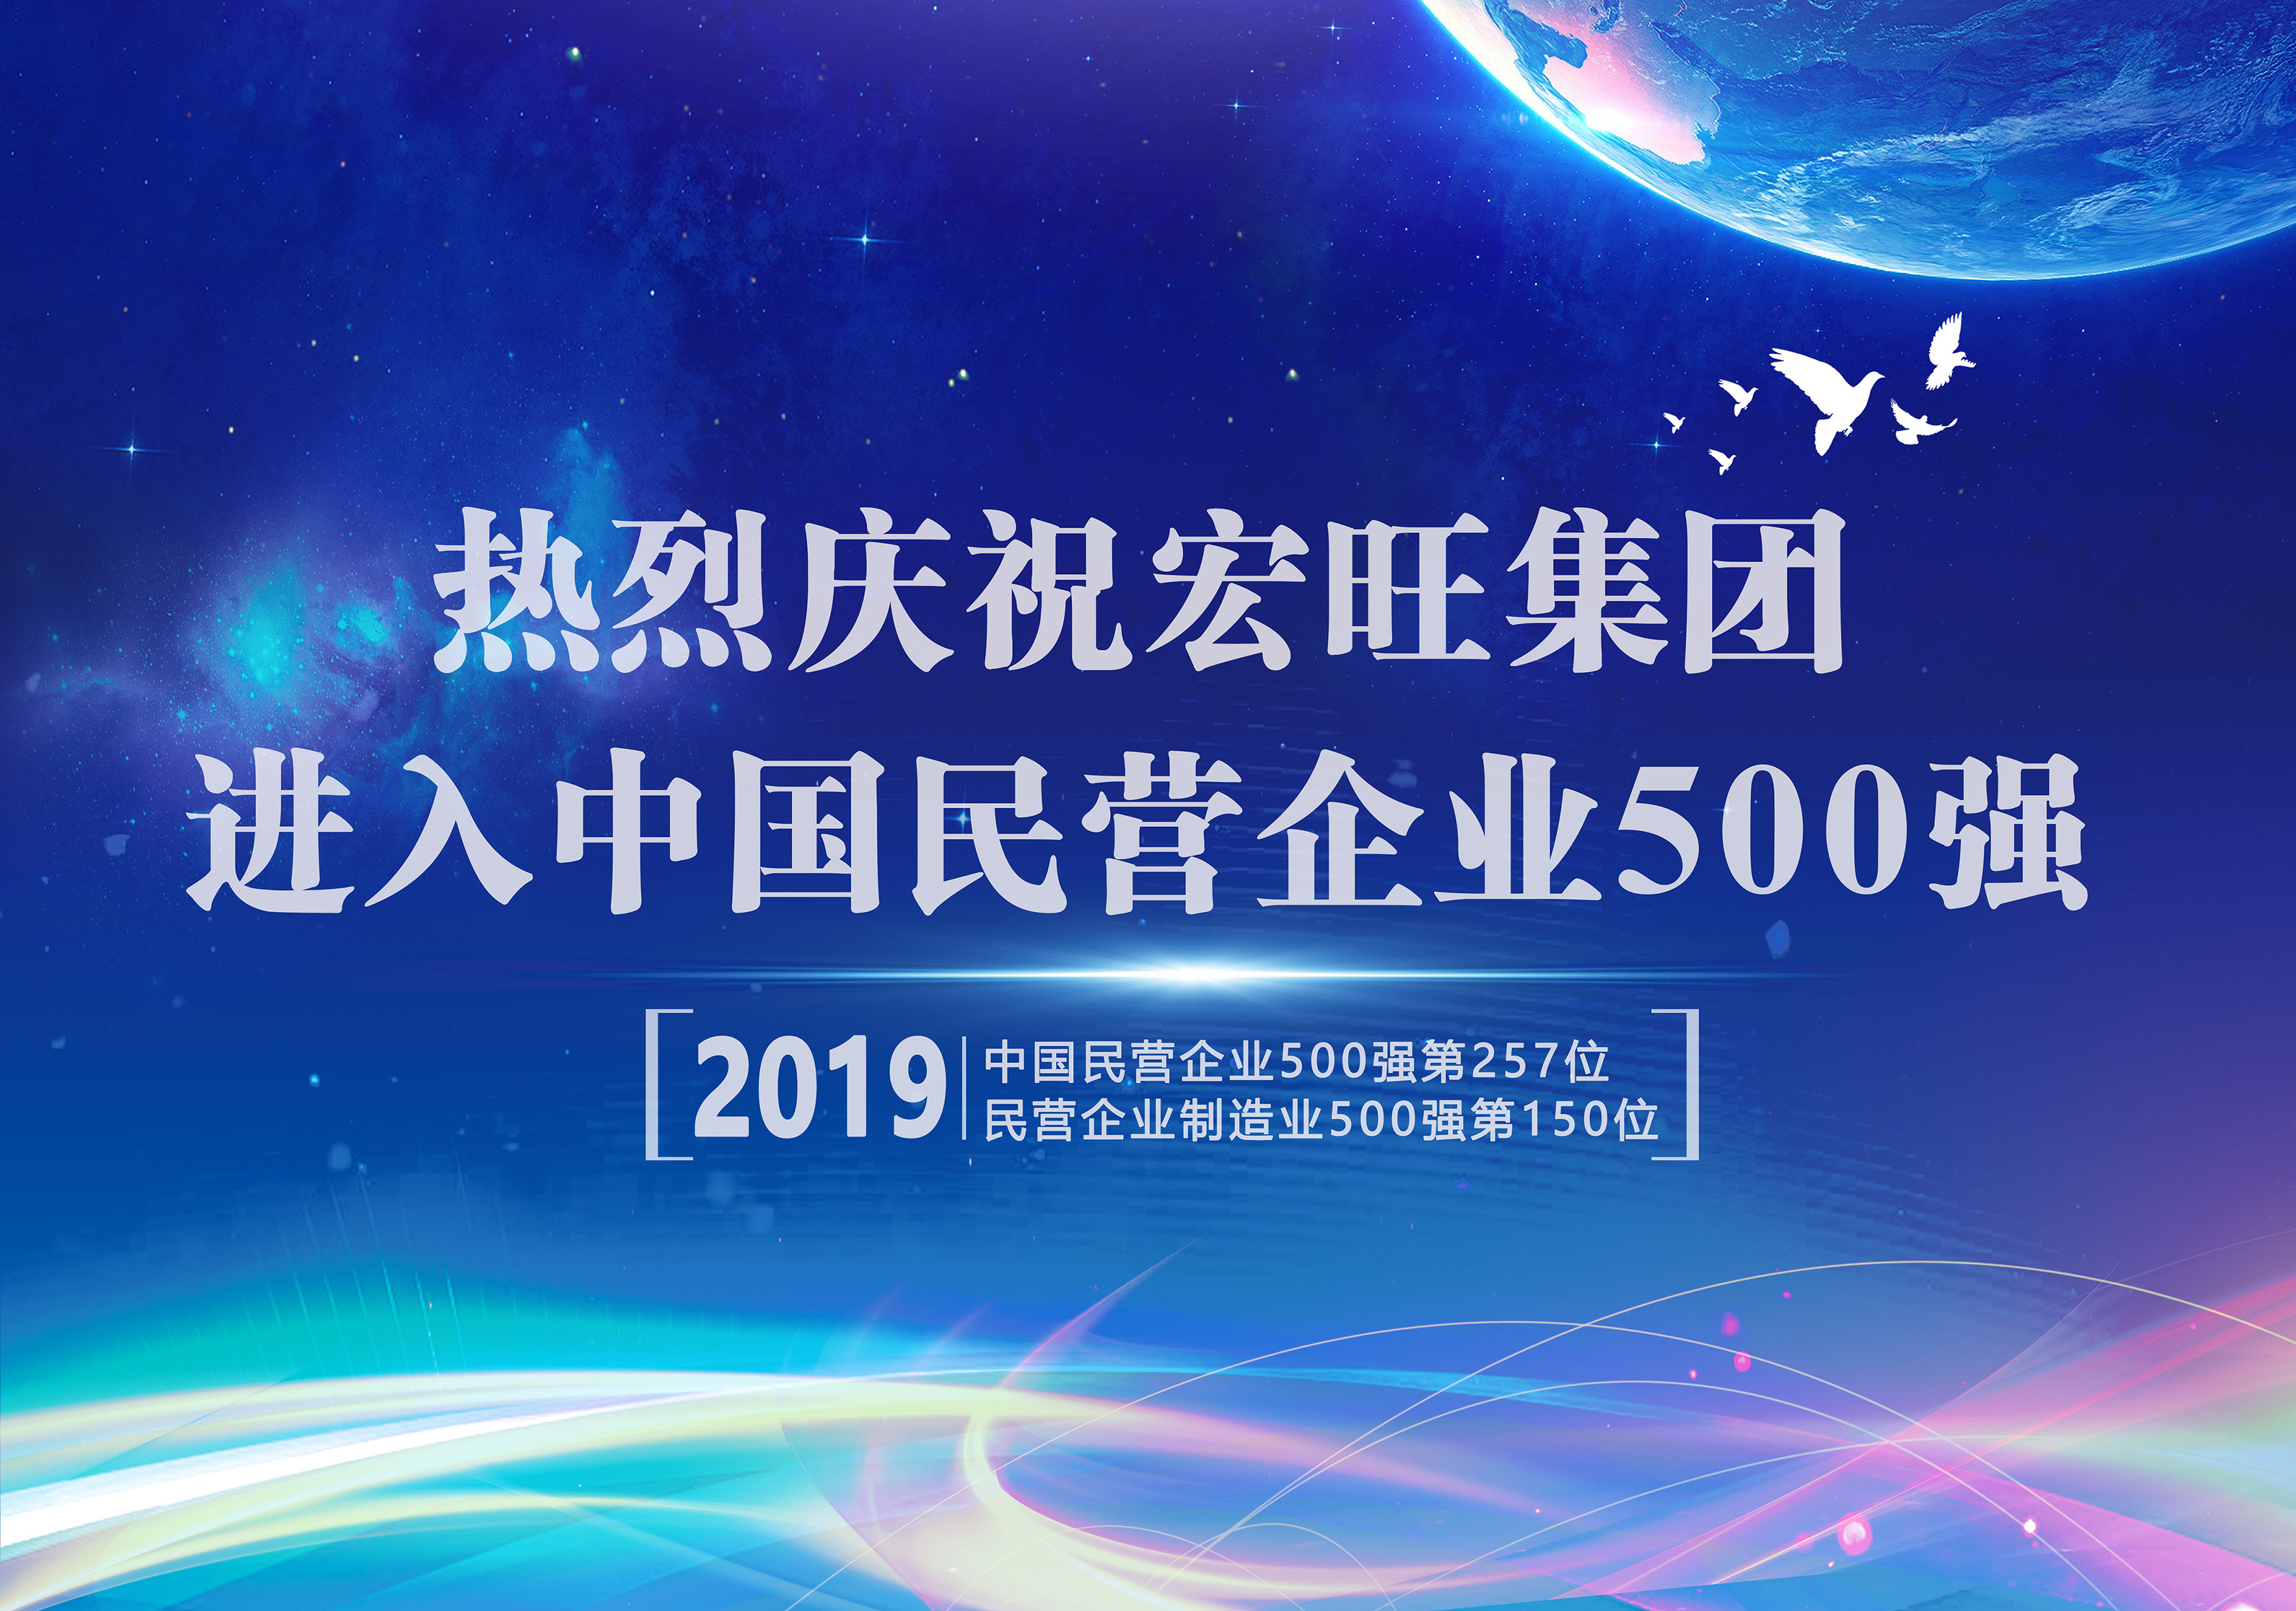 Hongwang Investment Group ranks 257th among China's Top 500 Private Enterprises 2018